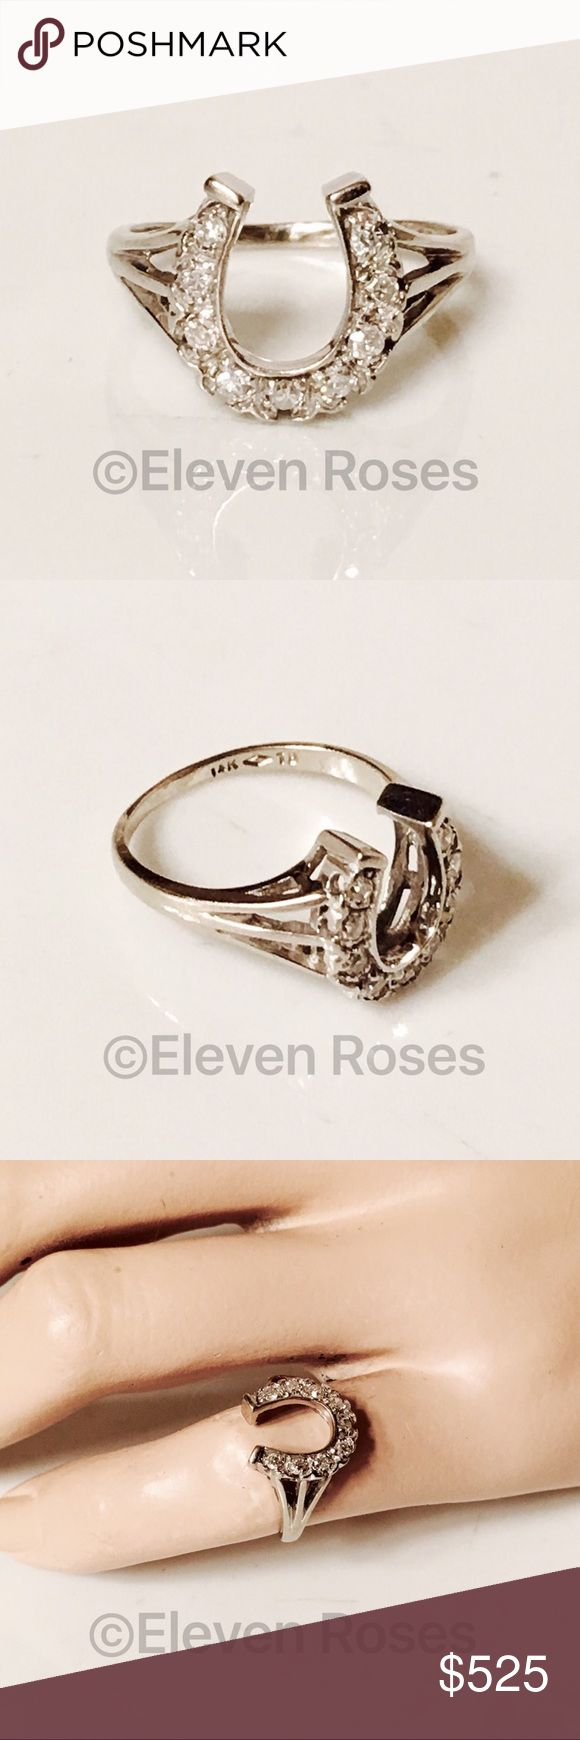 Vintage 14k White Gold & Diamond Horseshoe Ring Vintage 14k White Gold & Diamond Horseshoe Ring - 585 14k White Gold - Real (mined from the earth) Diamond Gemstones - Hallmarked; 14k TB - US Size 5.5 Fine Jewelry Jewelry Rings